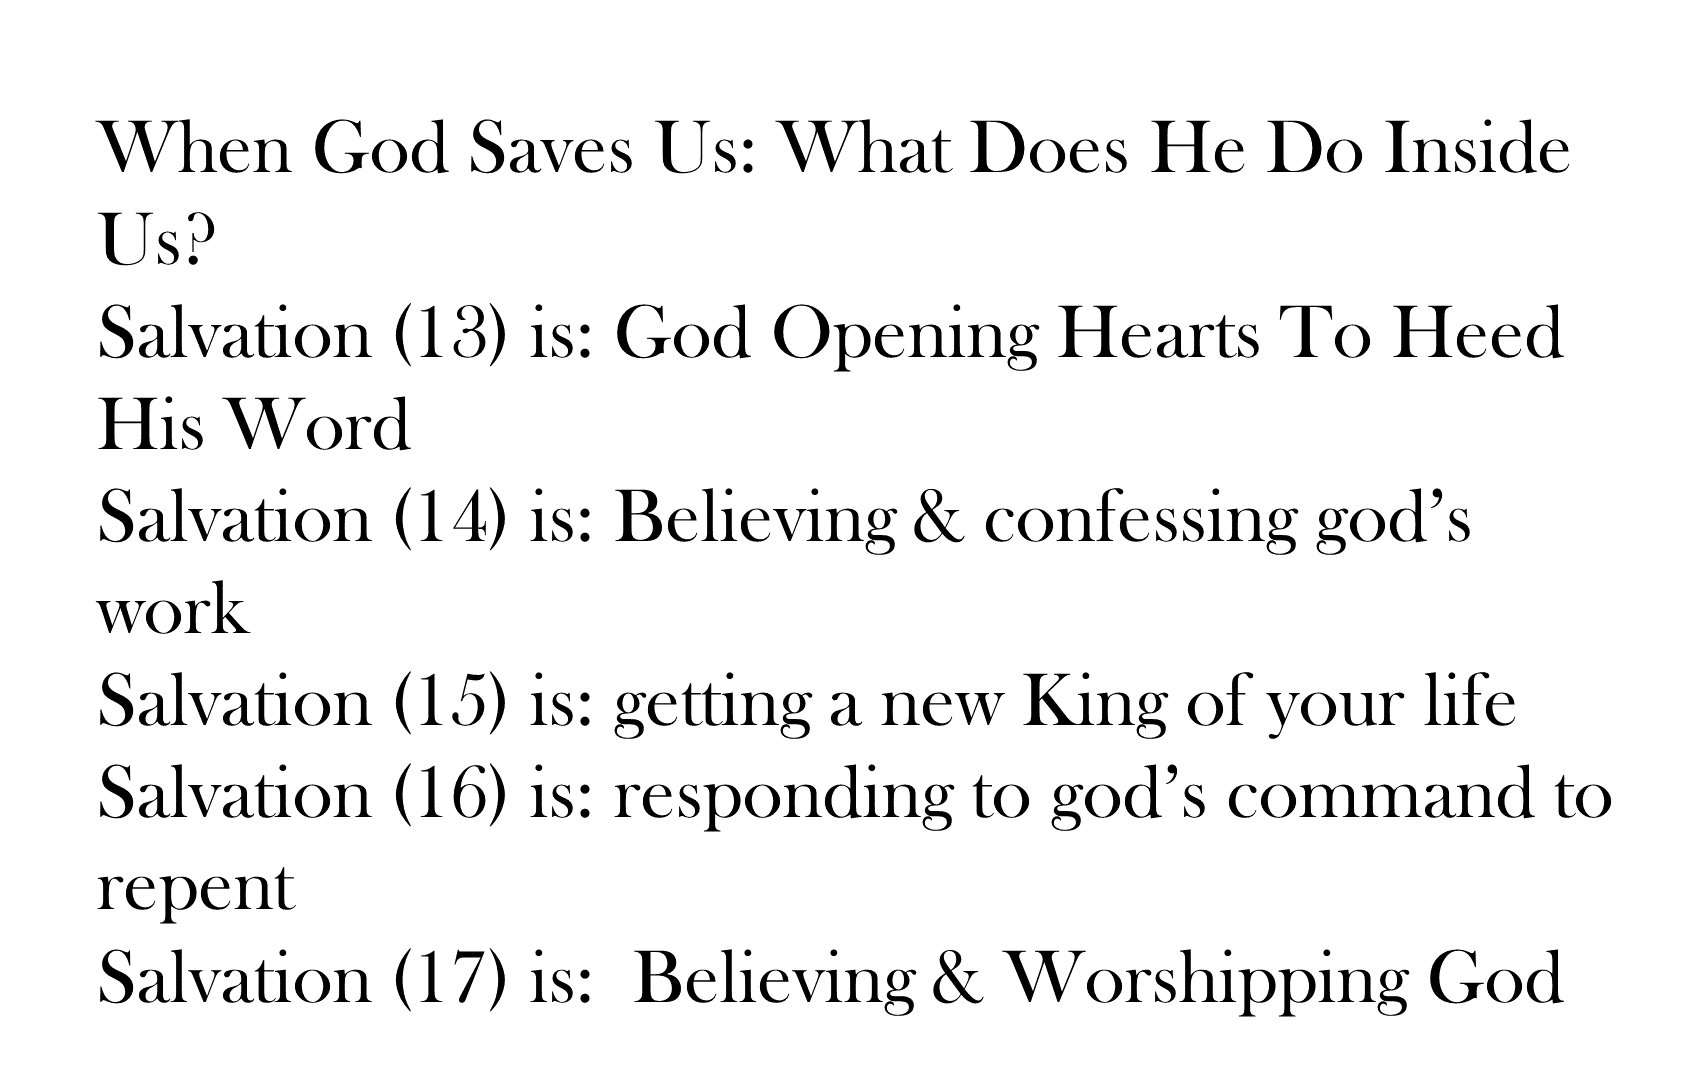 ESH-19 - The Discipline Of Disciple-Making - When God Saves Us - What Does He Do Inside Us (21)